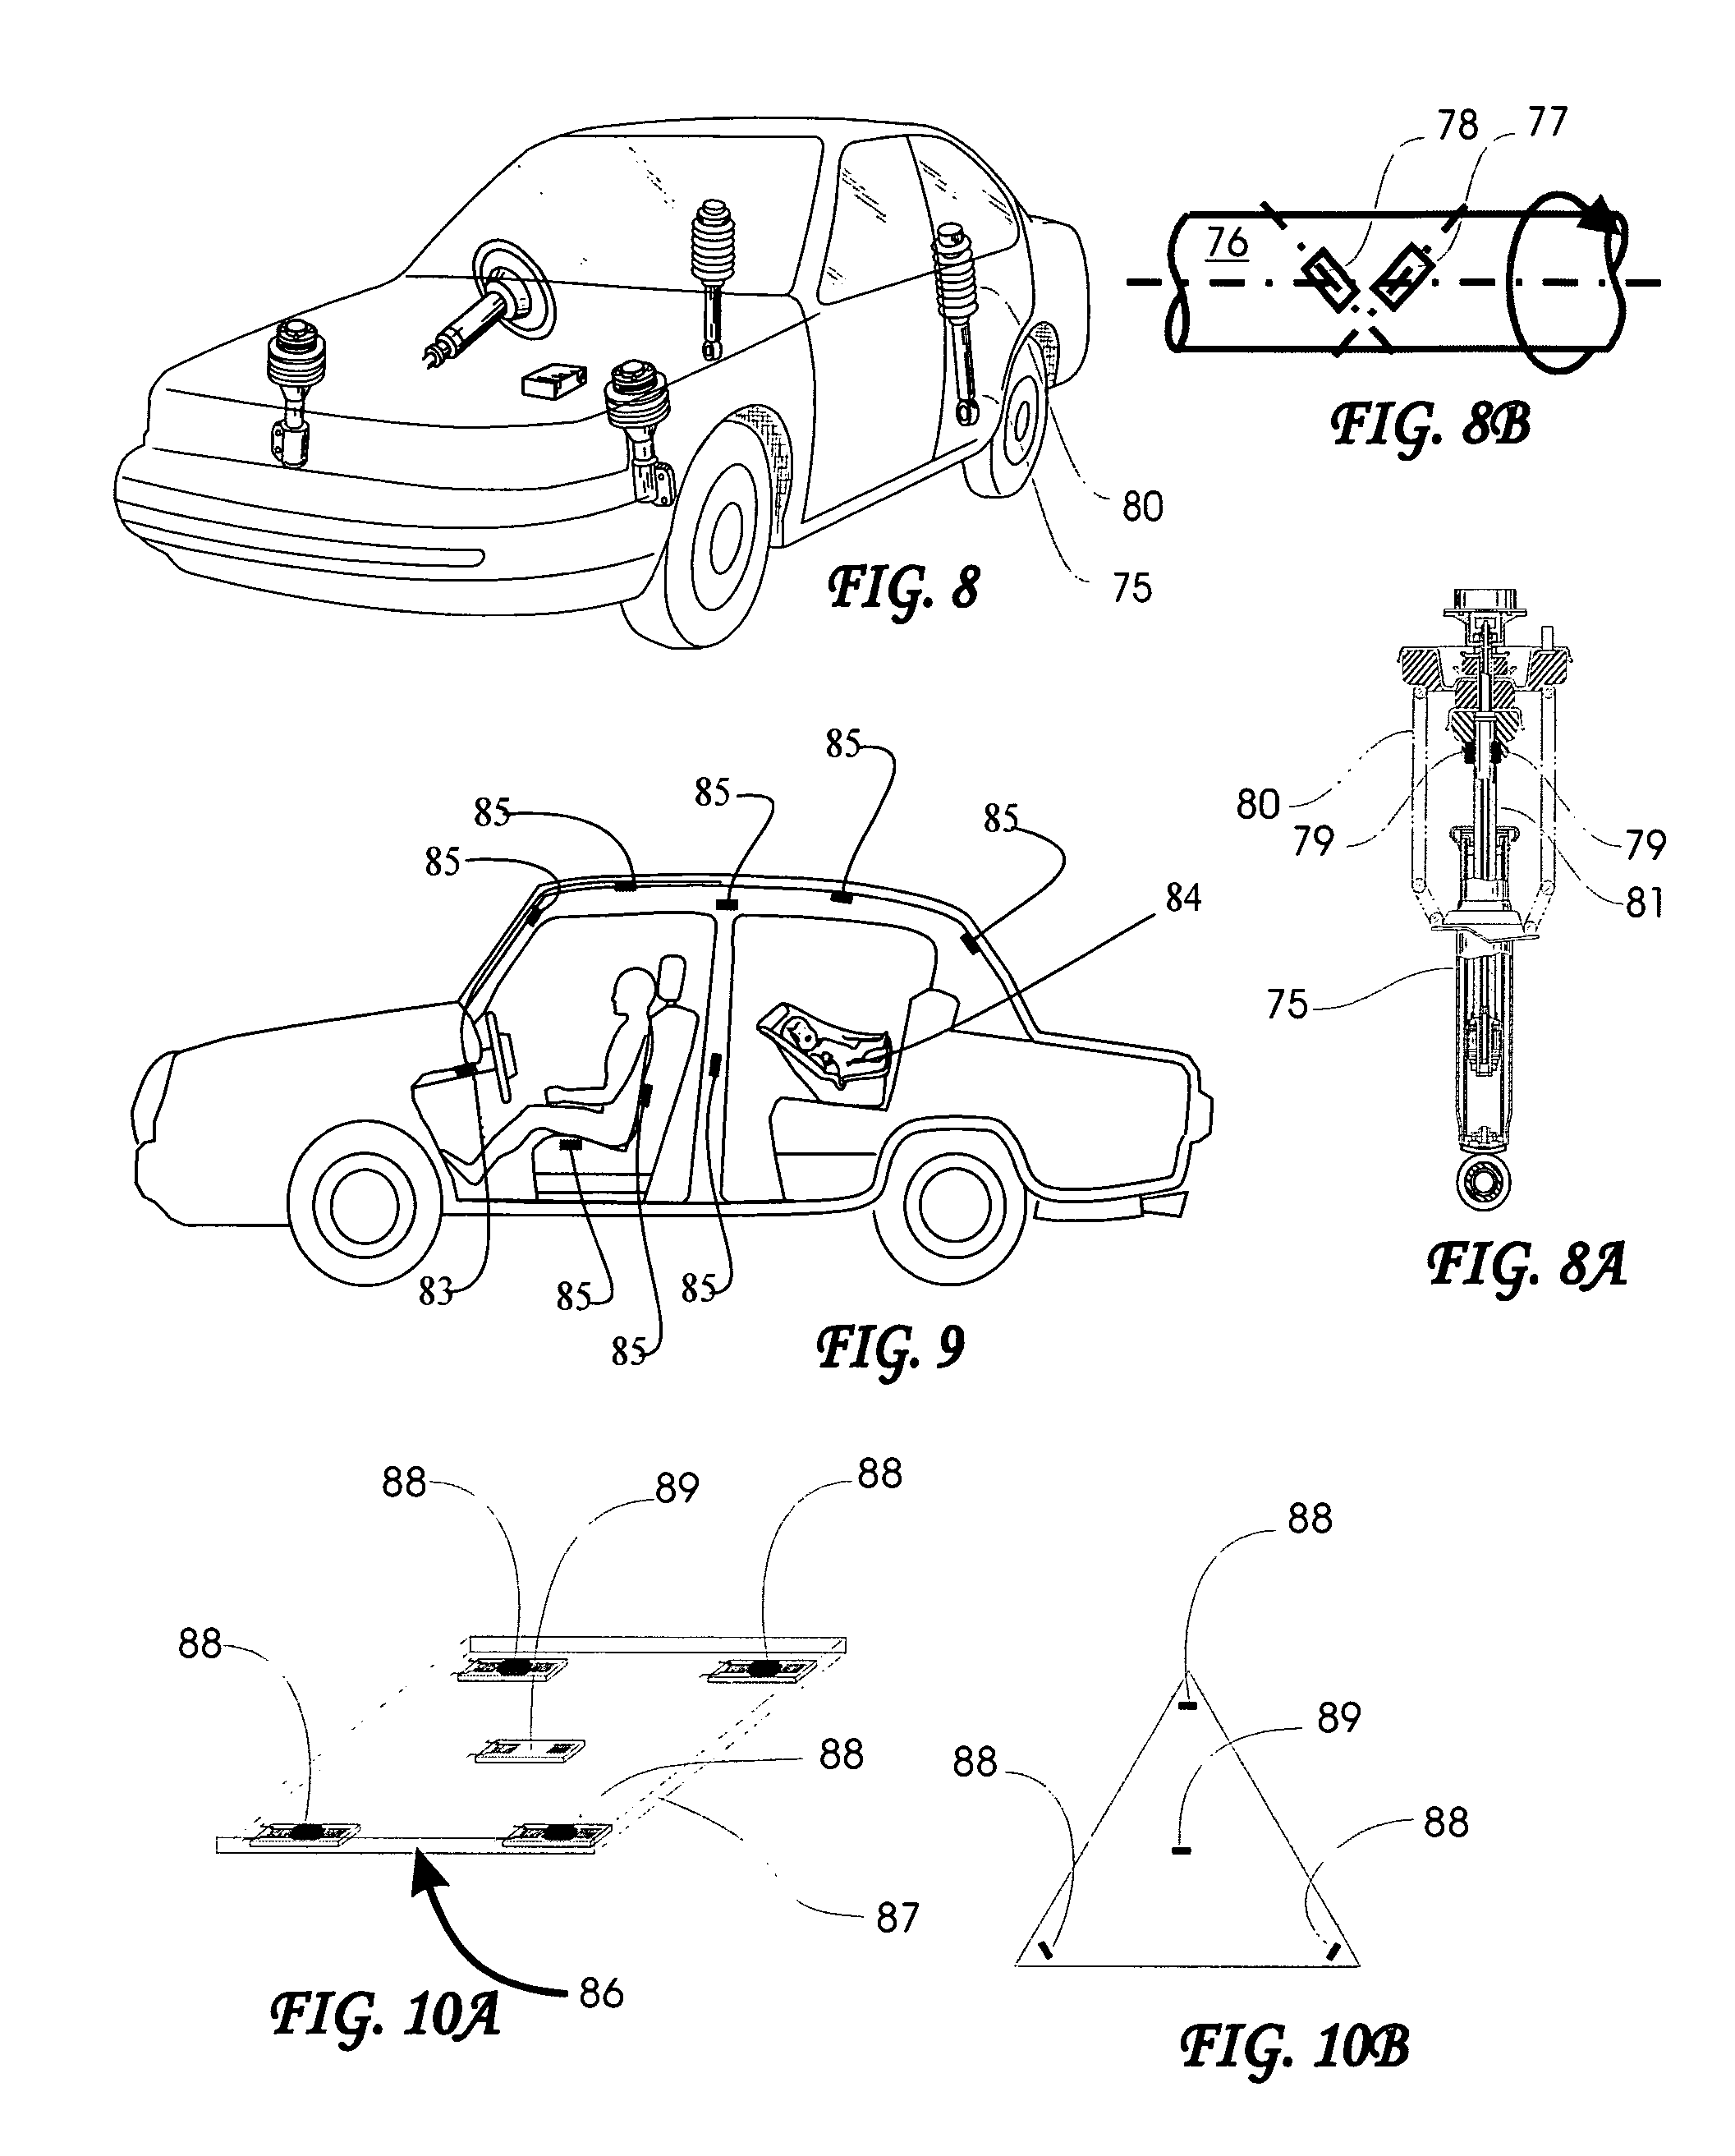 patent us 7 103 460 b1 08 Ford Fusion Engine patent